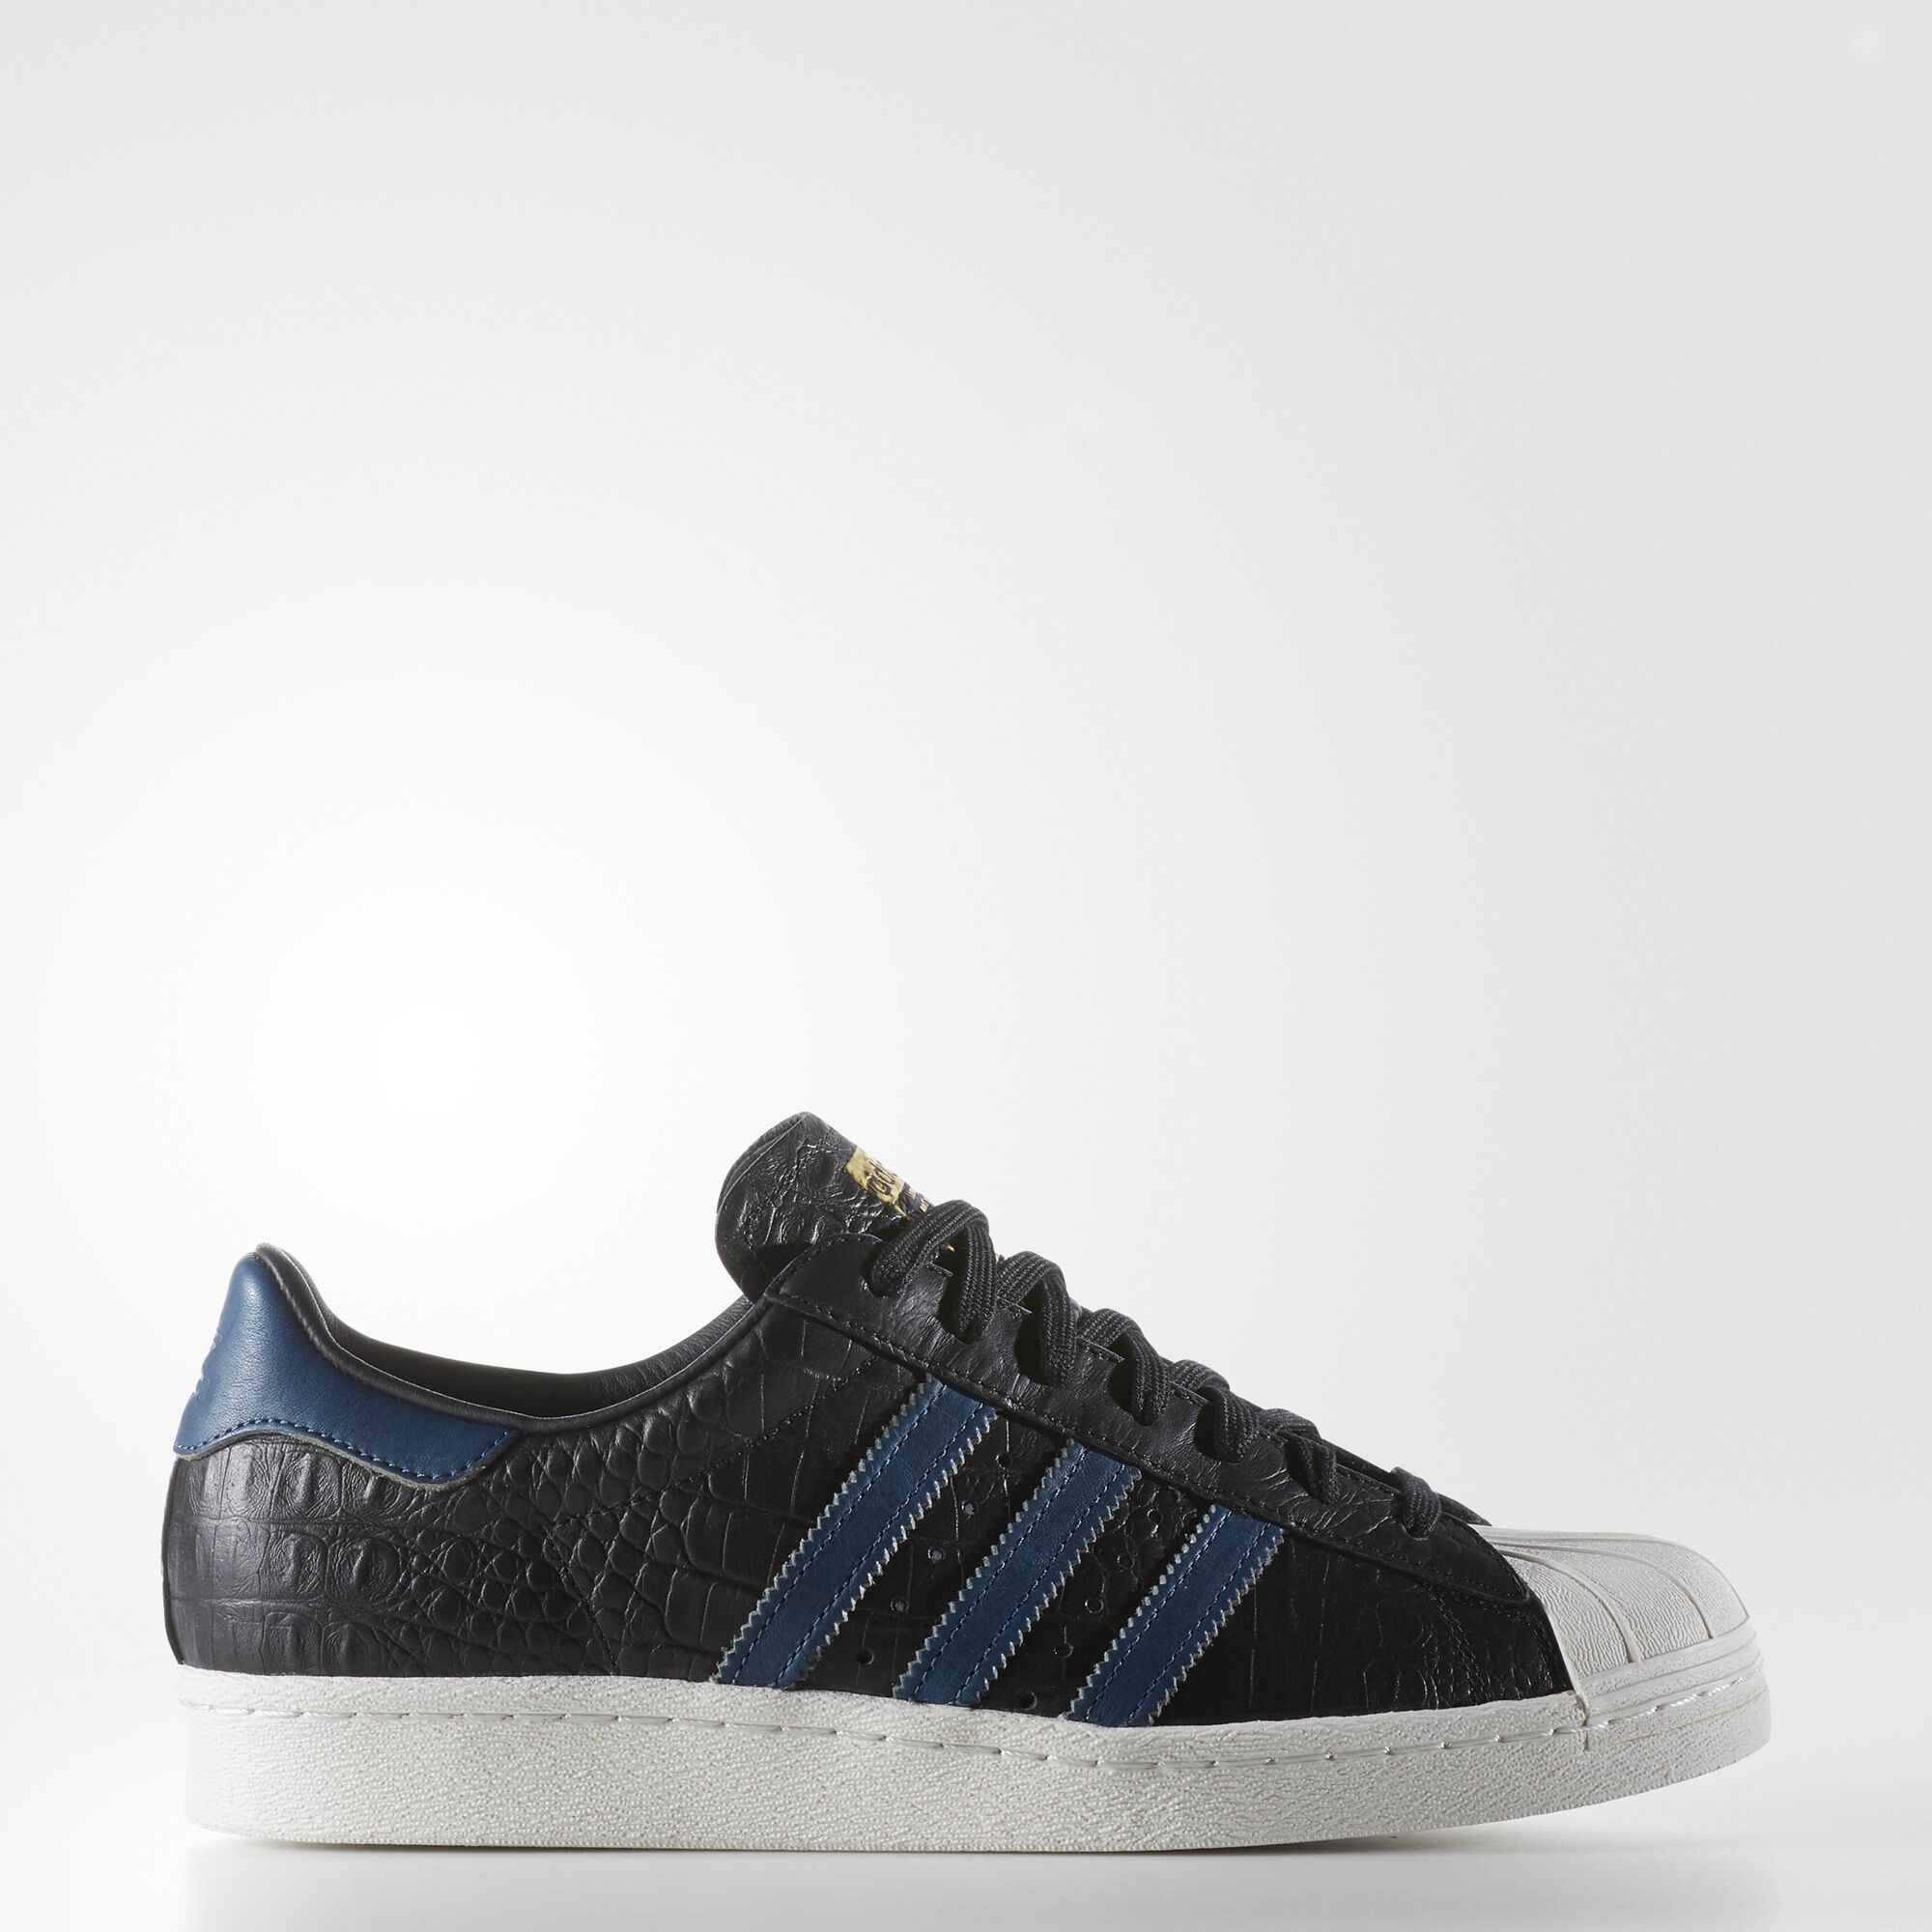 Adidas Metallic Black